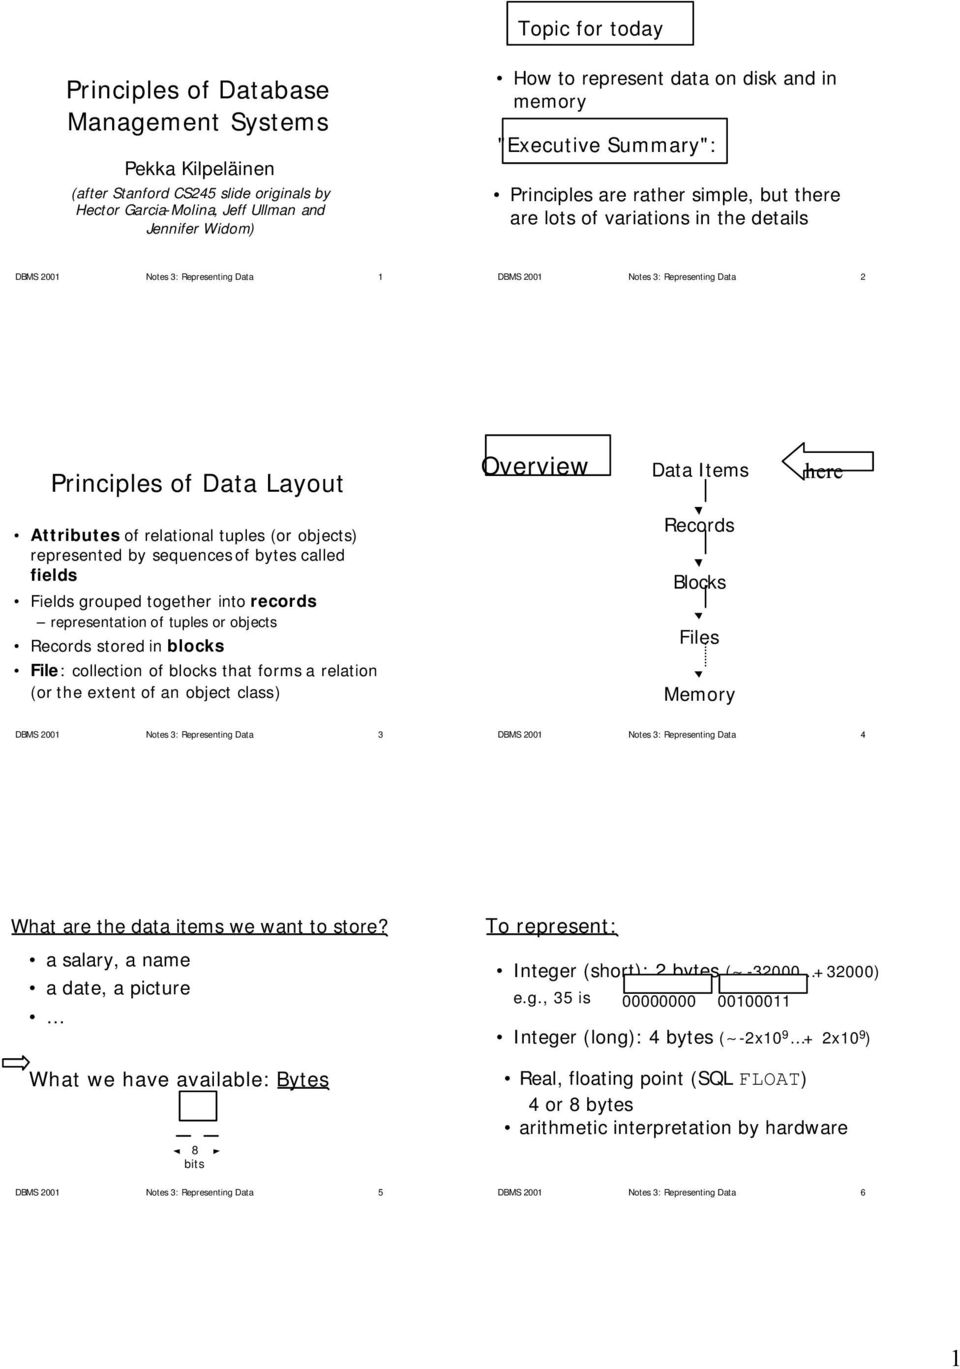 Principles of Data Layout Overview Data Items here Attributes of relational tuples (or objects) represented by sequences of bytes called fields Fields grouped together into records representation of